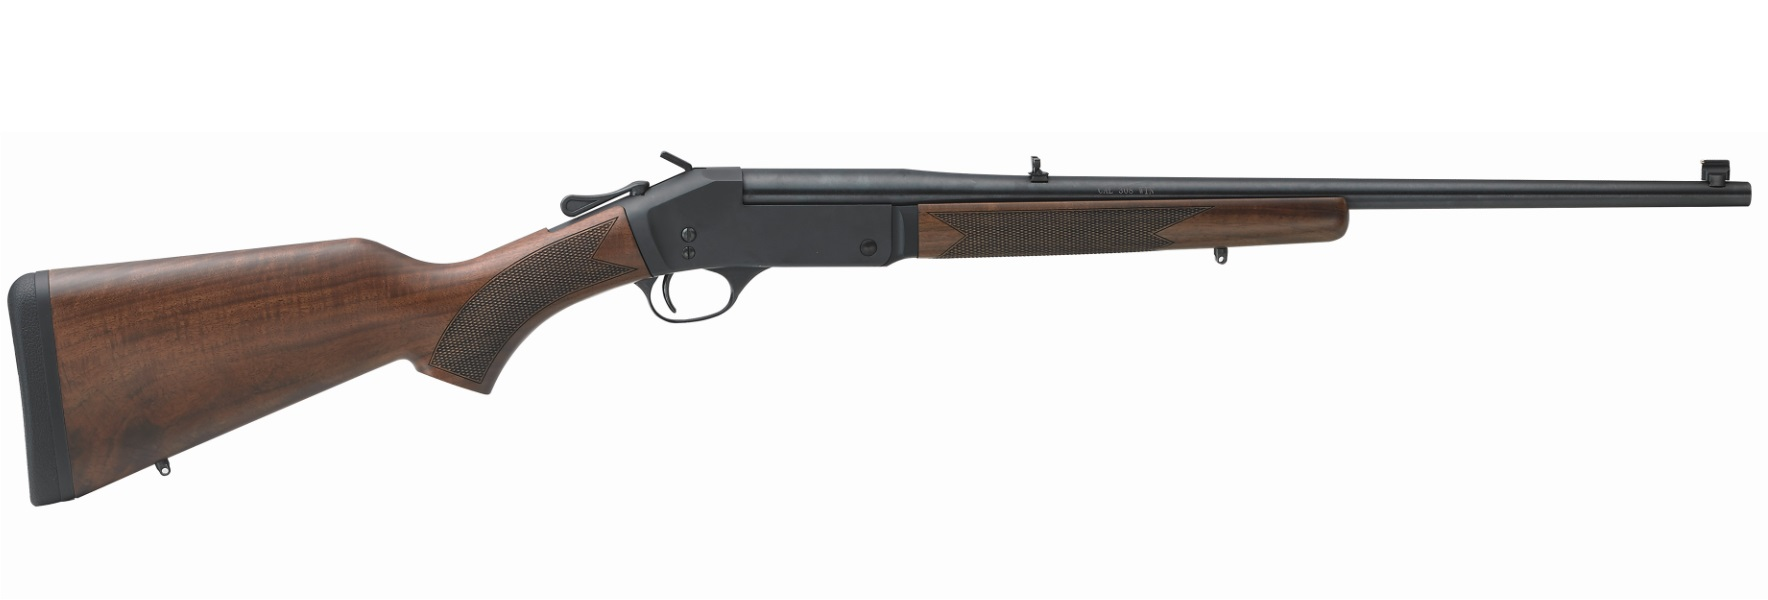 Henry Repeating Arms Henry Singleshot Rifle 30-30